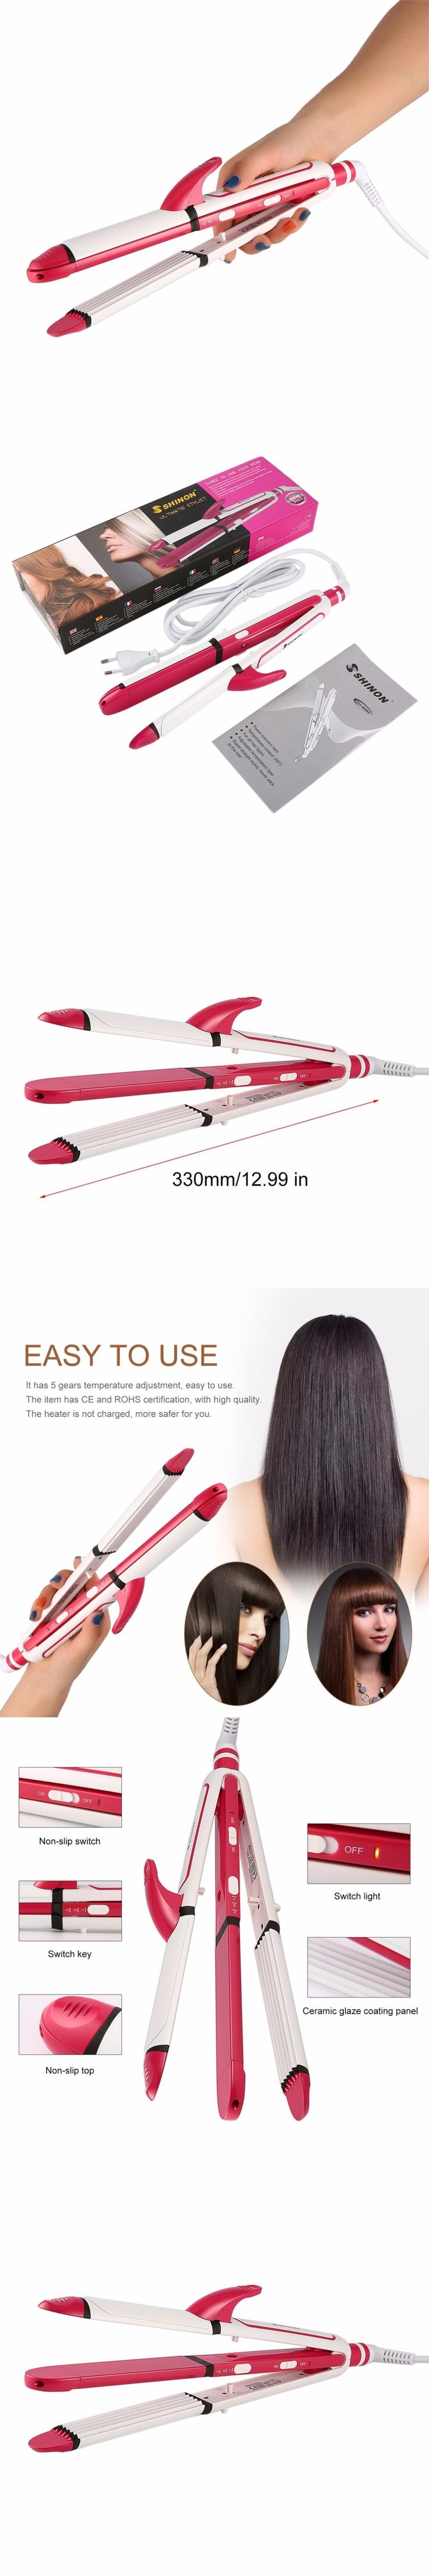 3-In-1 Multifunctional Hair Curler EU Plug Electric Curler Iron Hair Perming Device Hair Straightener Wet /Dry Dual Use Curlers